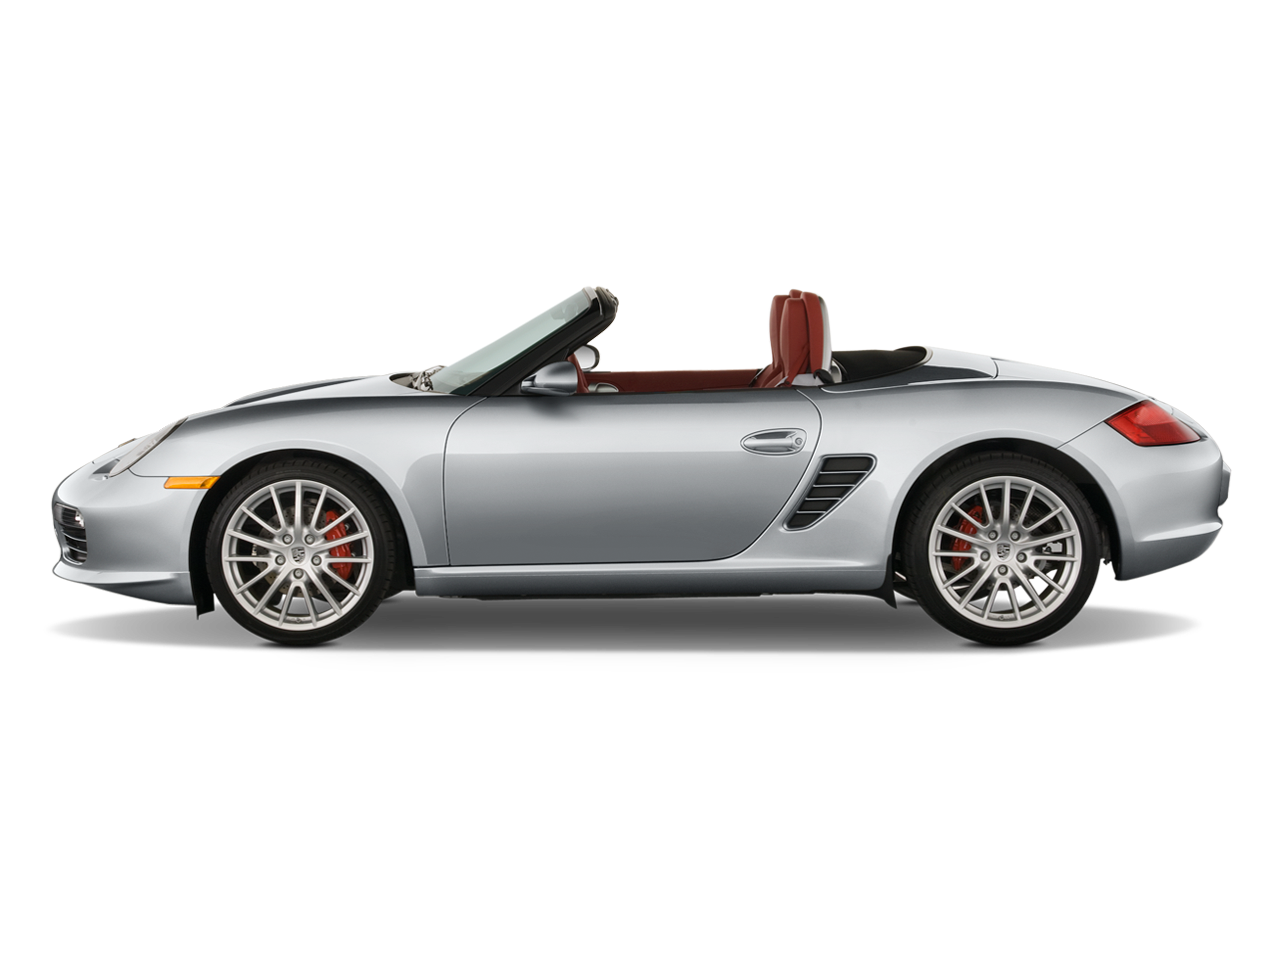 2008 Porsche Boxster S Porsche Convertible Sports Car